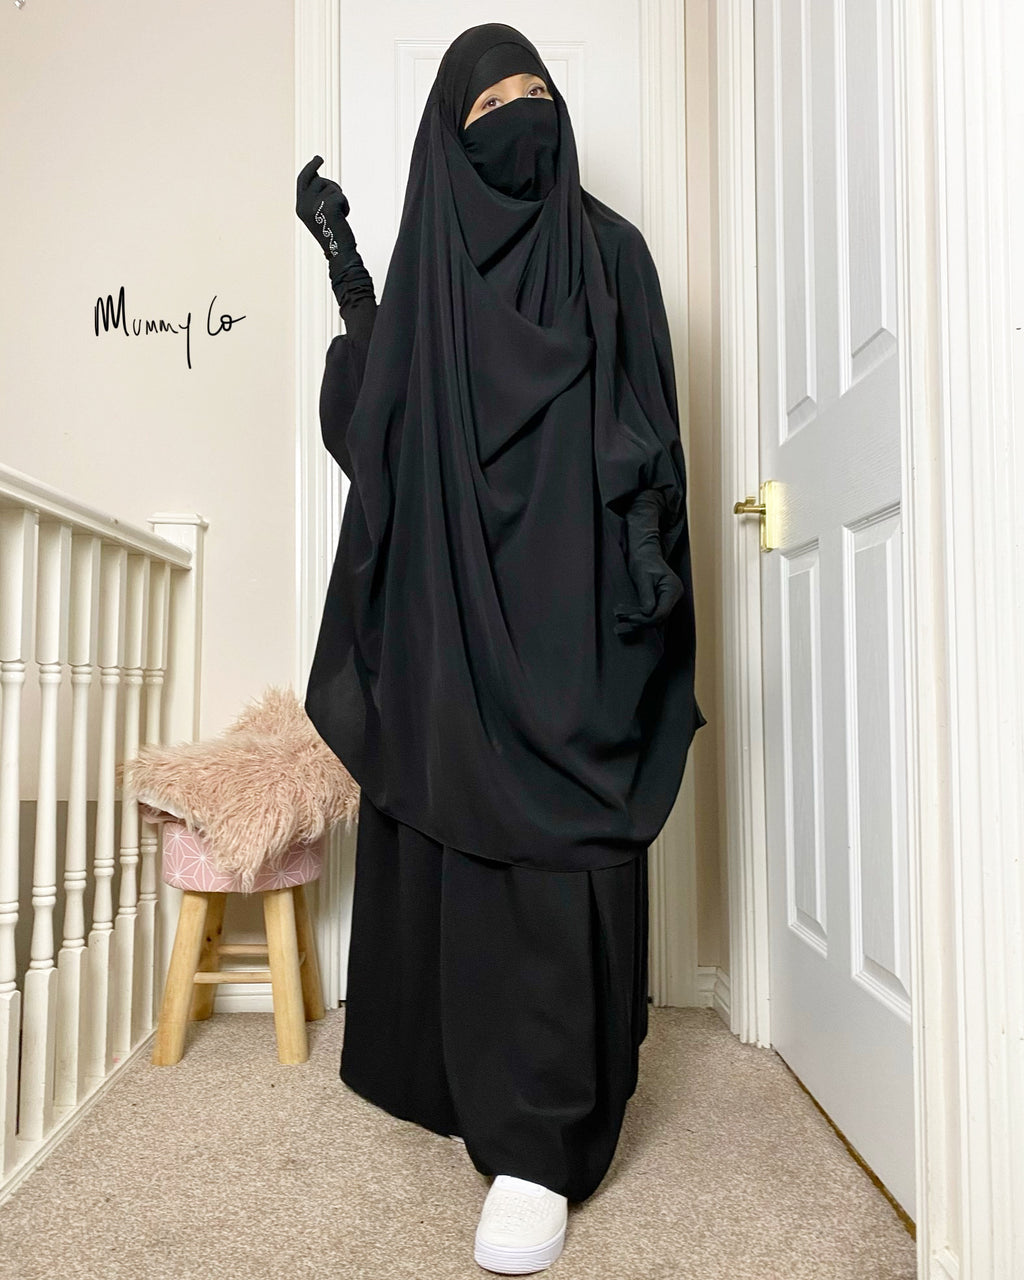 JILBAB 2 PIECES SET MUMMY & MATERNITY Black